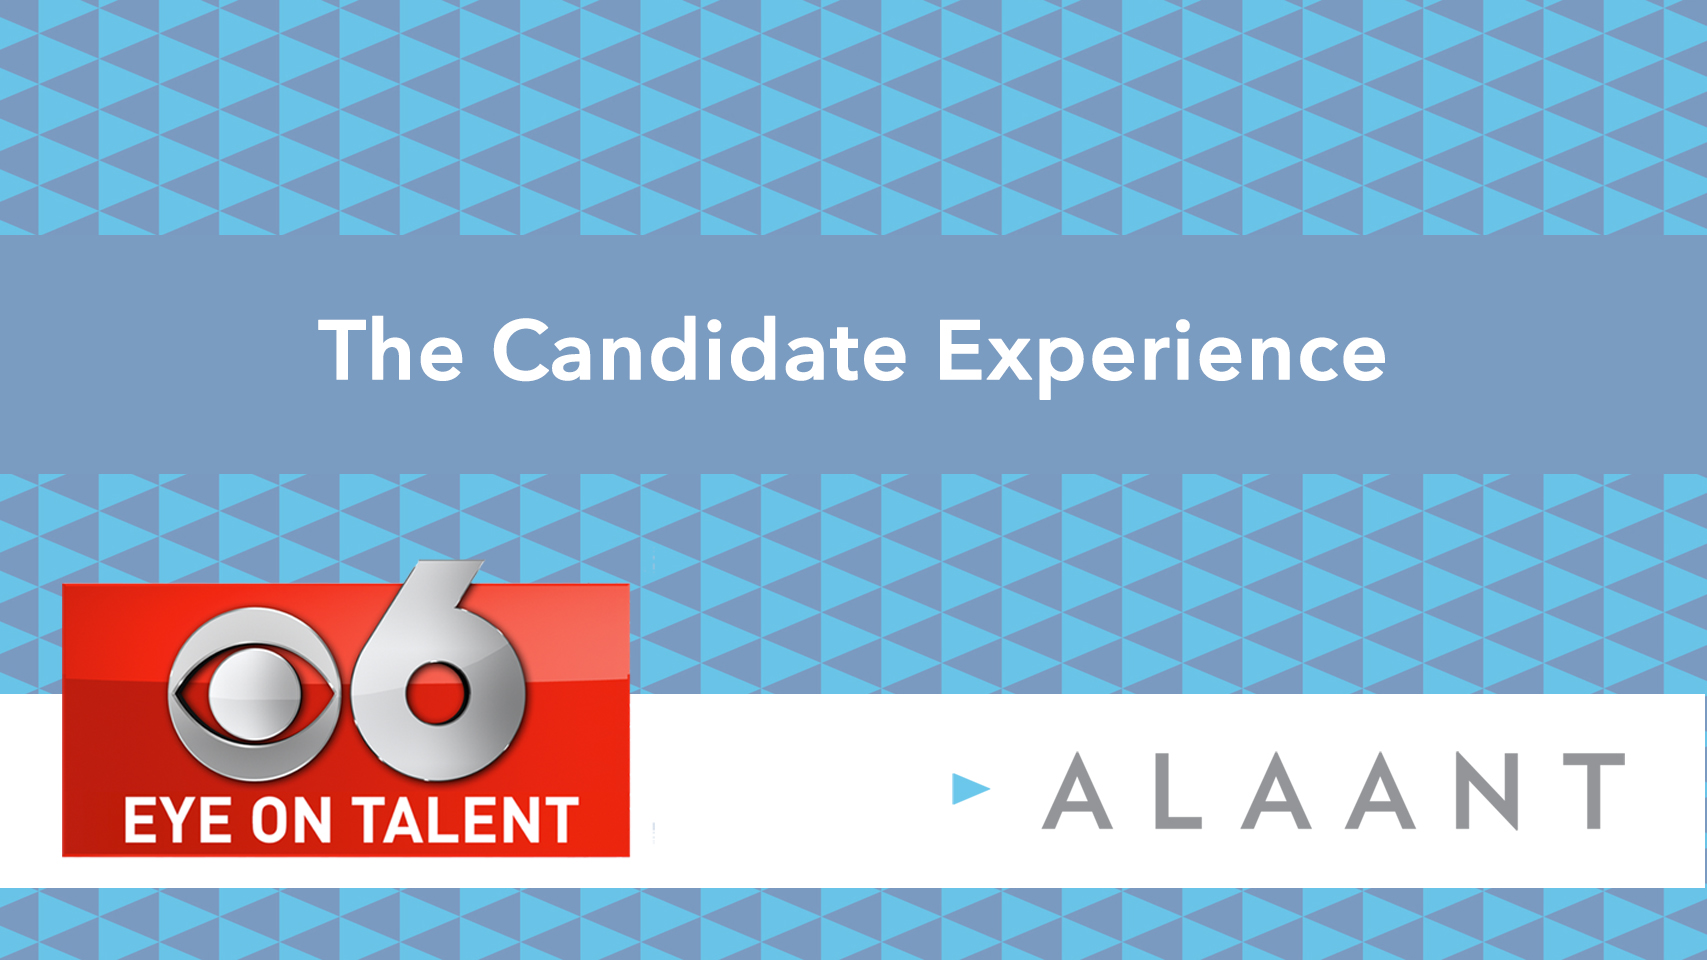 Eye on Talent: The Candidate Experience